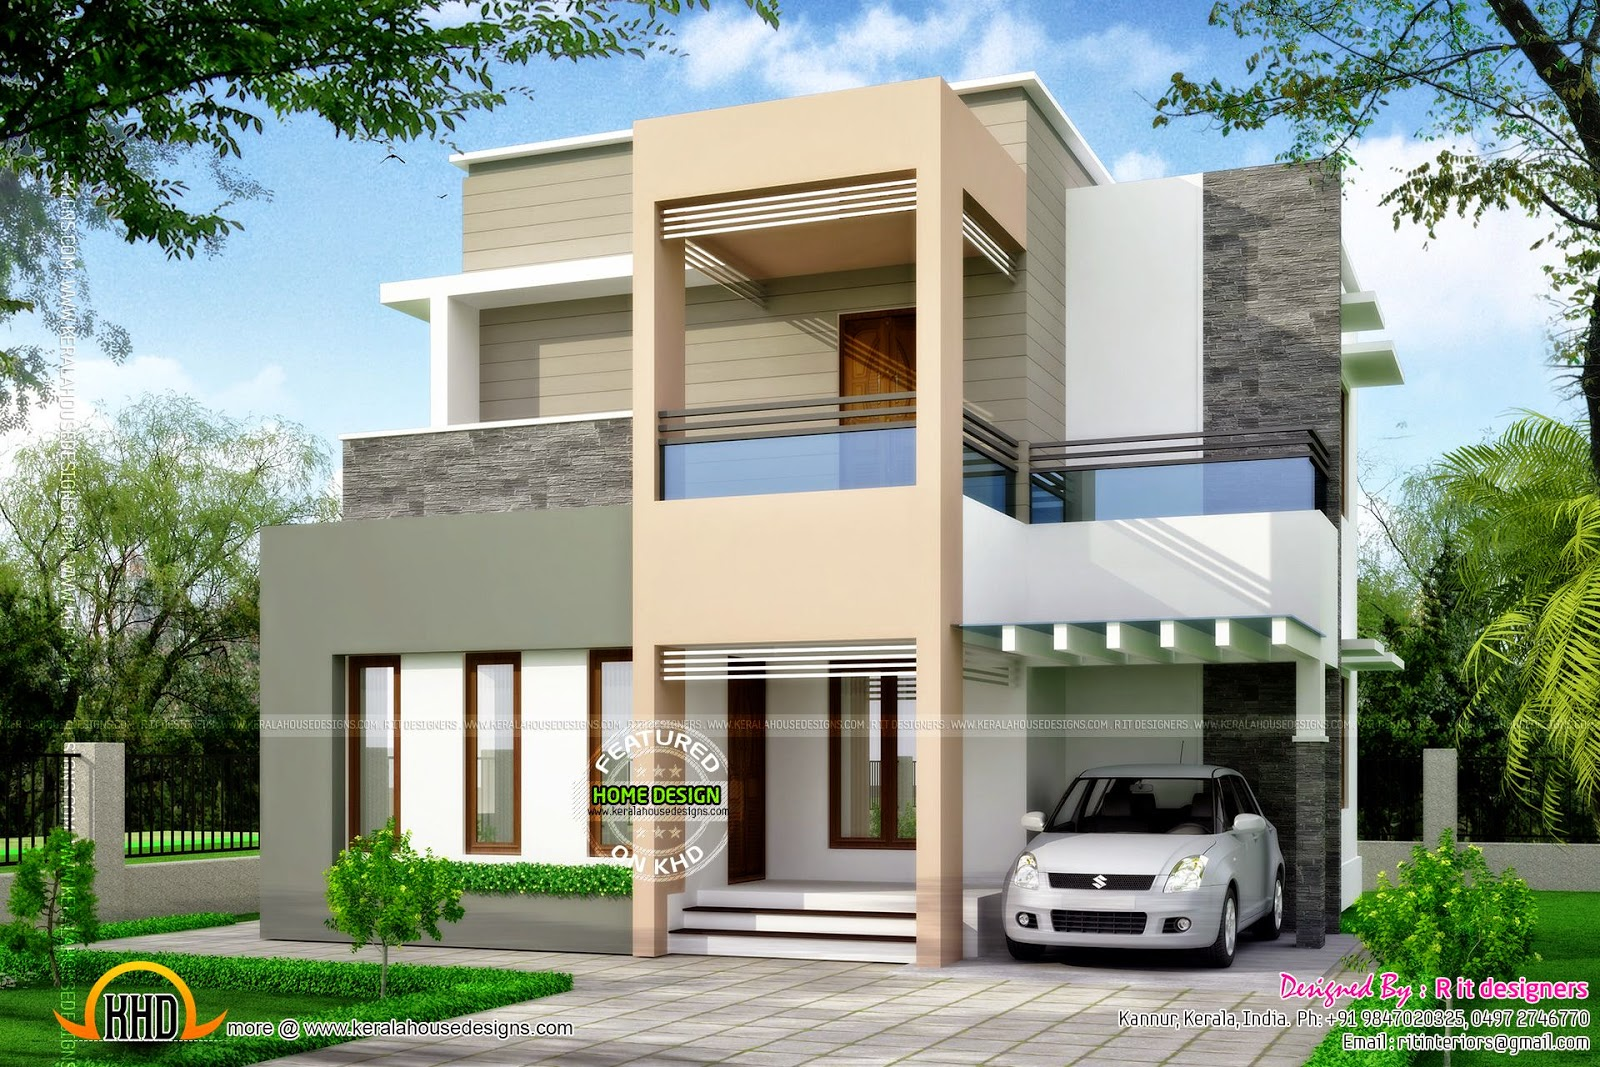 December 2014 Kerala home design and floor plans : box type house from www.keralahousedesigns.com size 1600 x 1067 jpeg 513kB